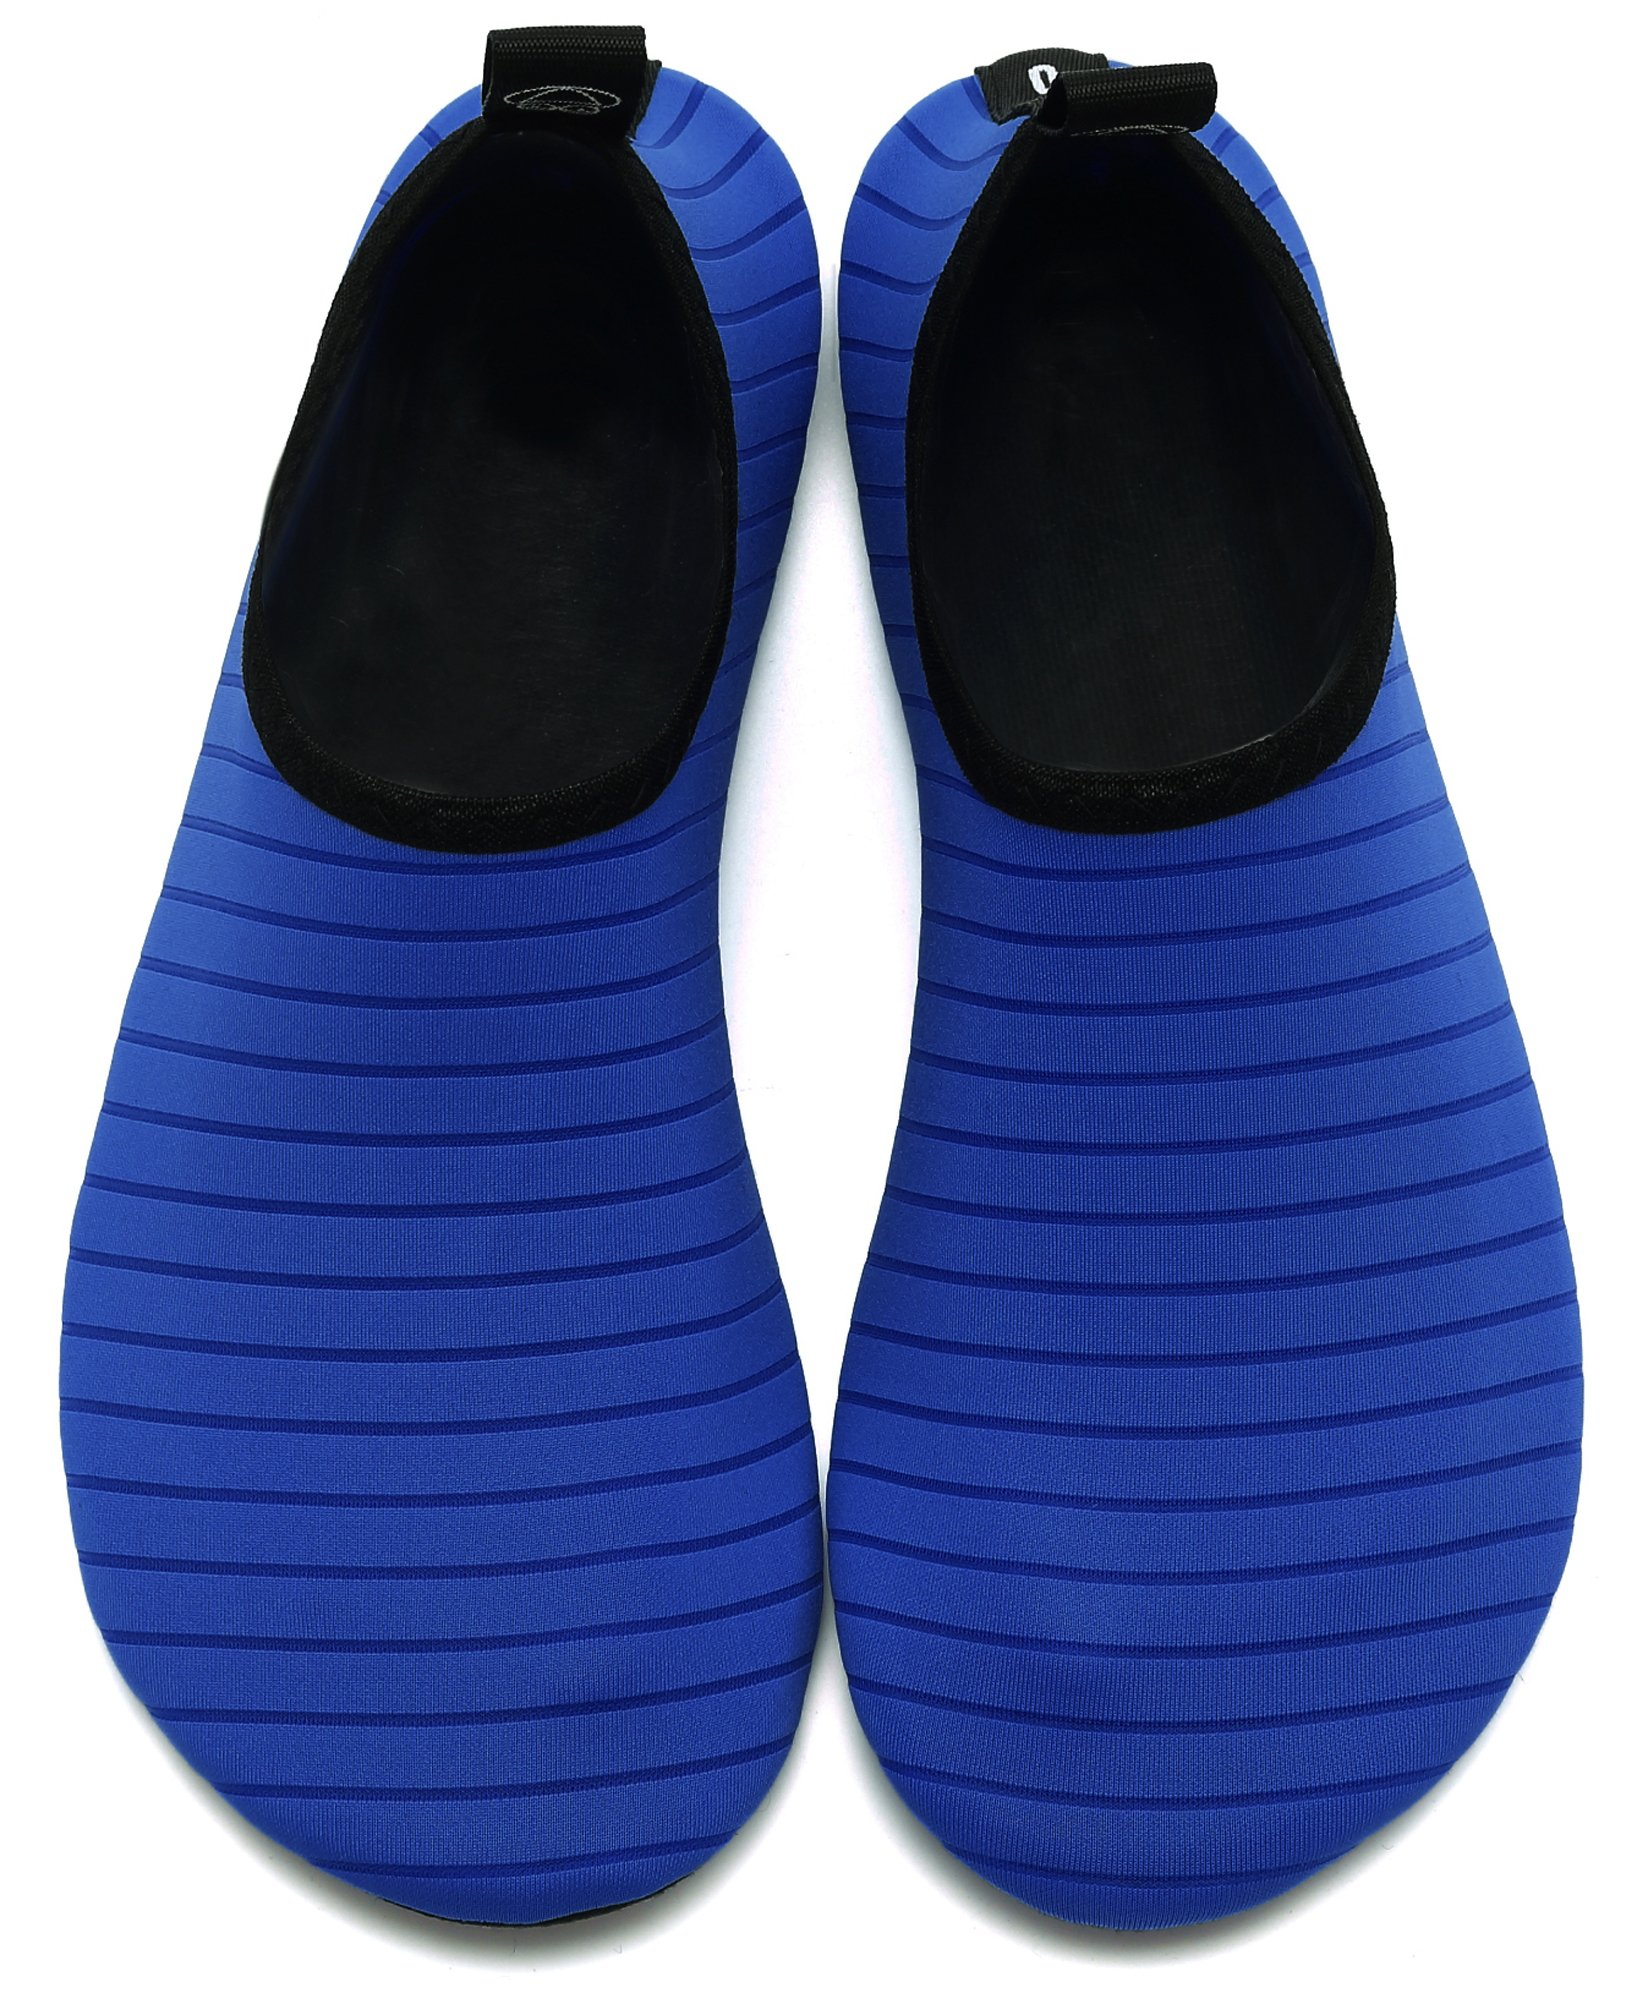 GUPYING Womens and Mens Summer Outdoor Water Shoes Aqua Socks for Beach Swim Surf Yoga Exercise (M(W:7.5-8.5,M:6.5-7.5), Blue) 38-39 by GUPYING (Image #4)